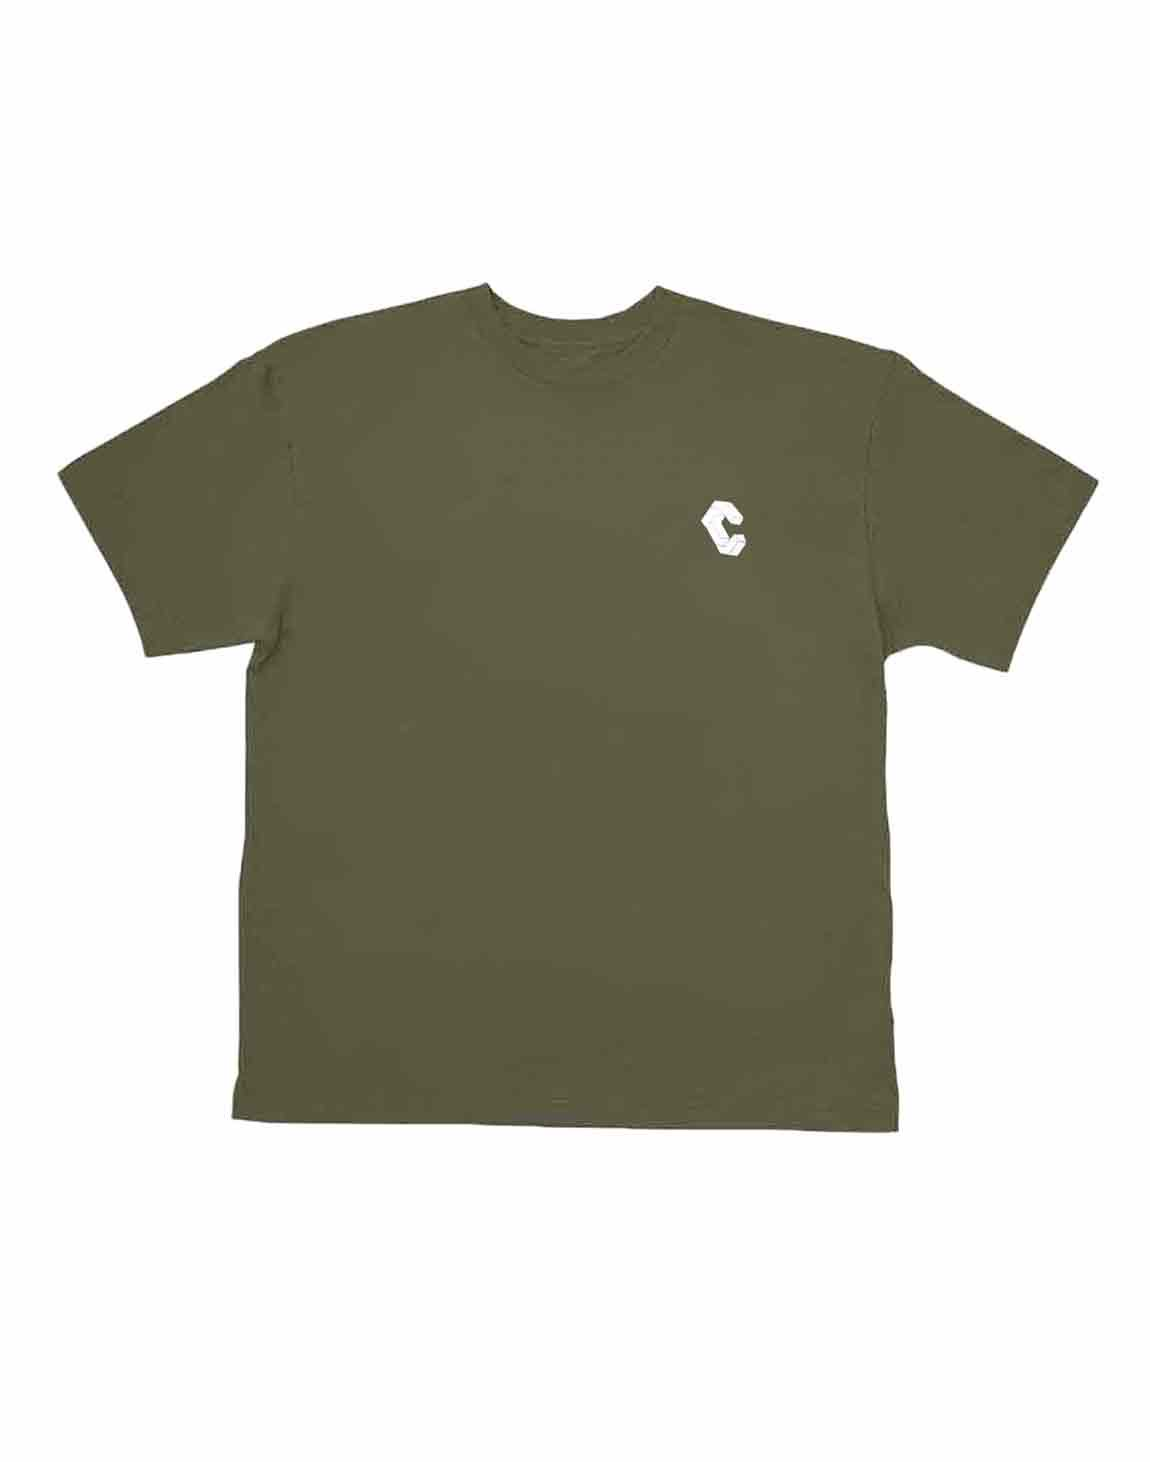 <img class='new_mark_img1' src='https://img.shop-pro.jp/img/new/icons55.gif' style='border:none;display:inline;margin:0px;padding:0px;width:auto;' />CRONOS HALF LOGO OVER SIZE T-SHIRT【KHAKI】